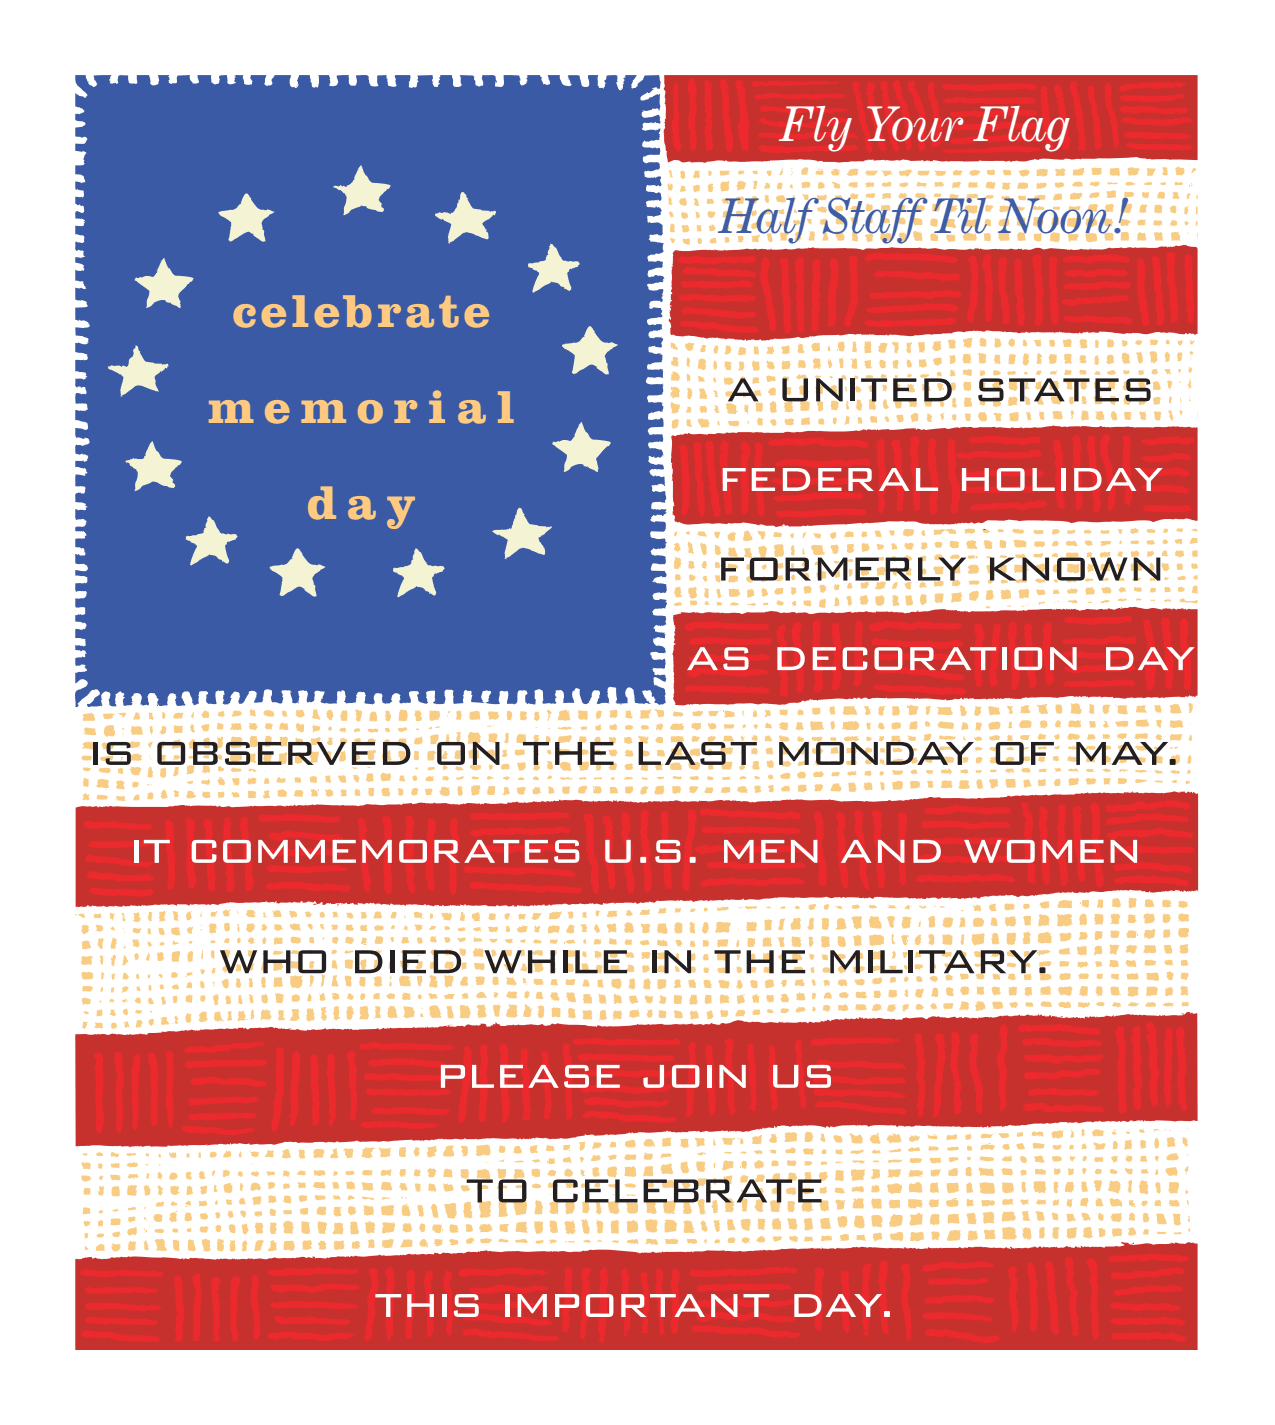 Celebrate Memorial Day - activities at Benton Village of Stockbridge in Stockbridge, GA